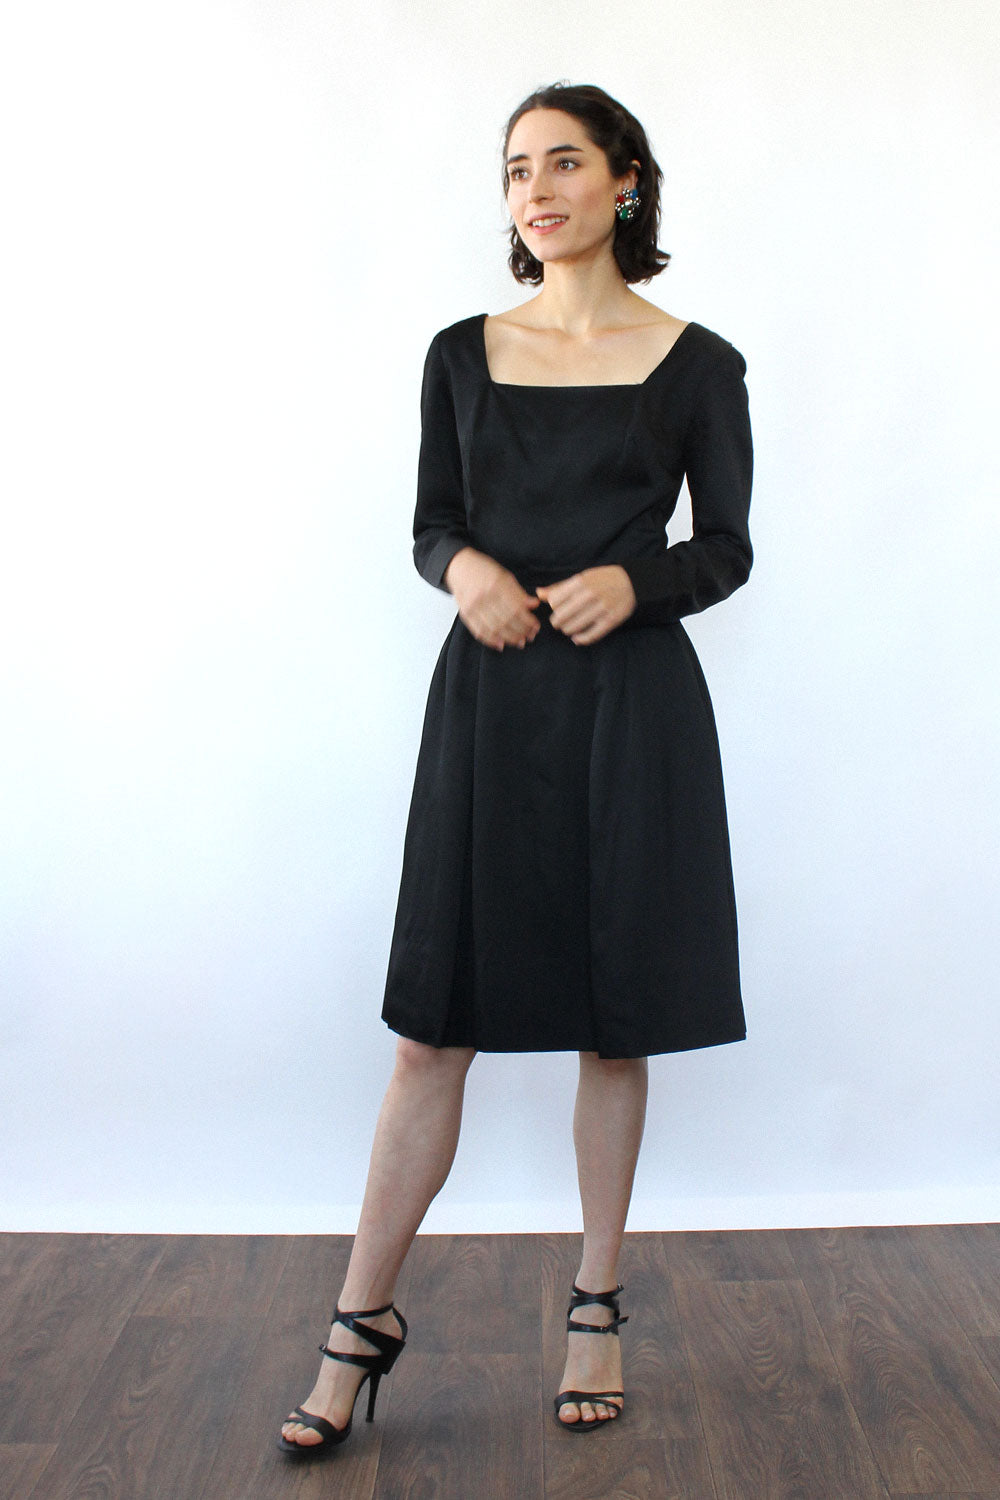 Mr. Mort Square Pleat Dress XS/S